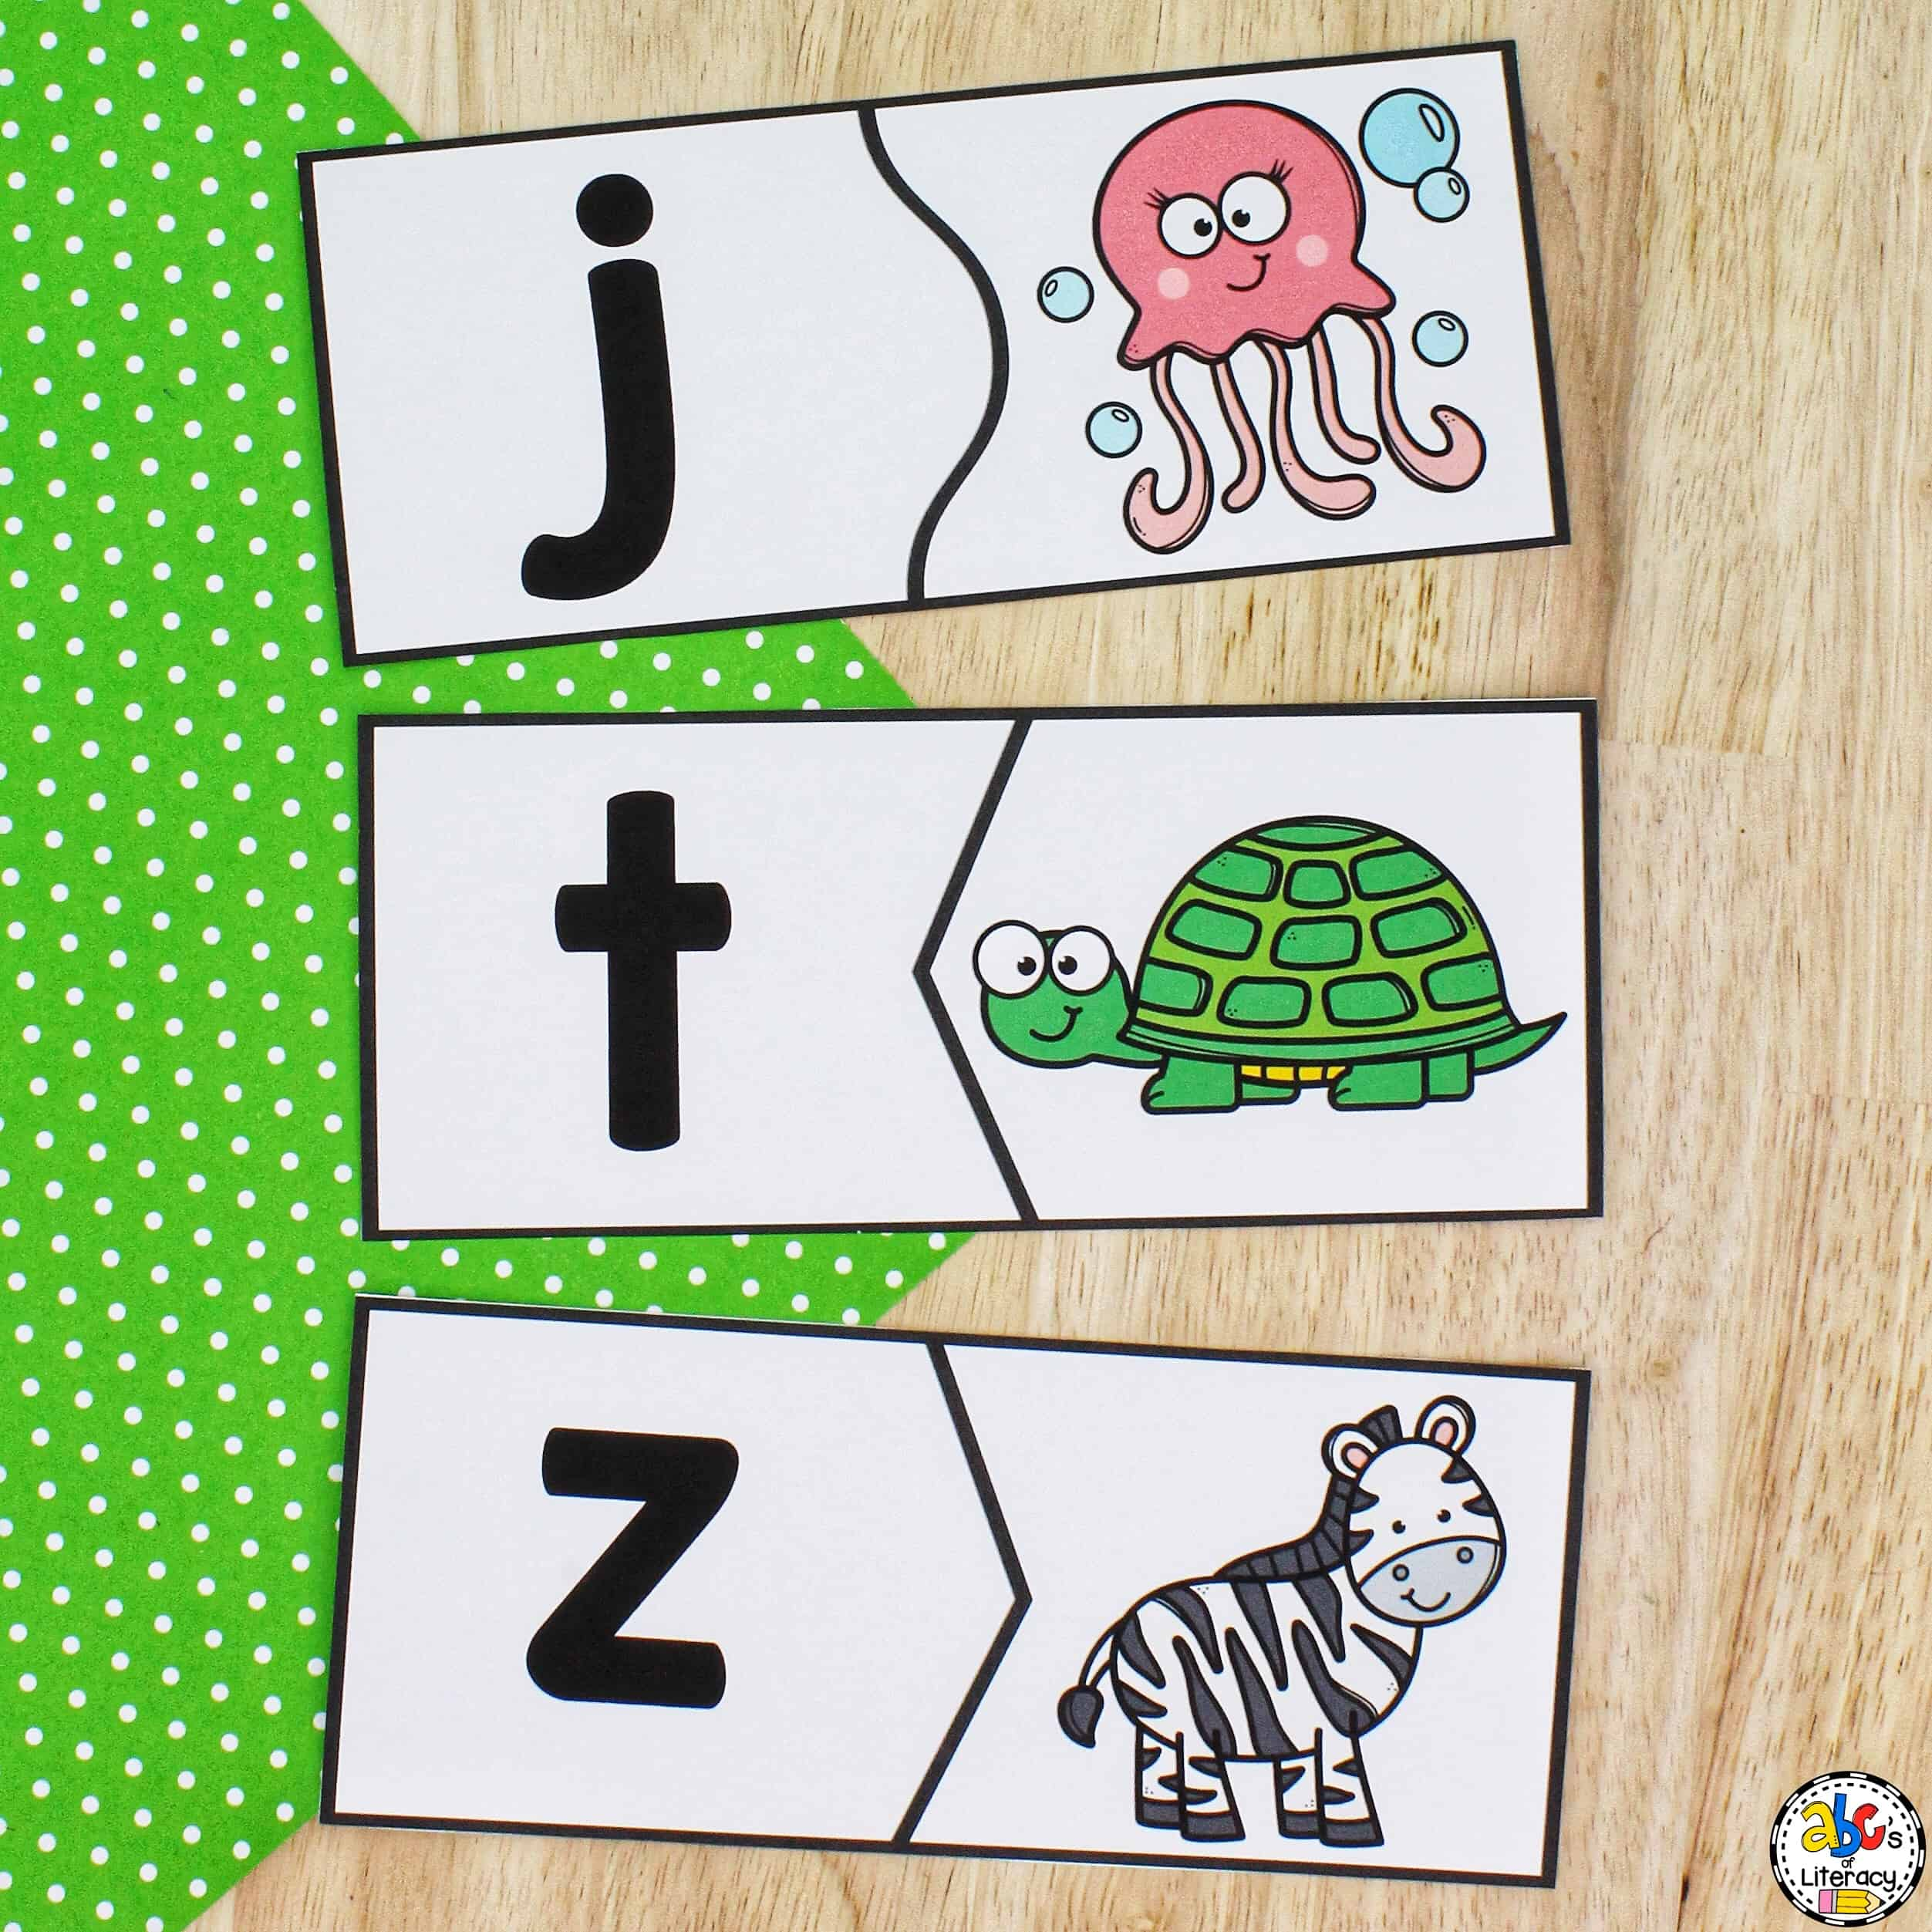 Initial Sounds Activity